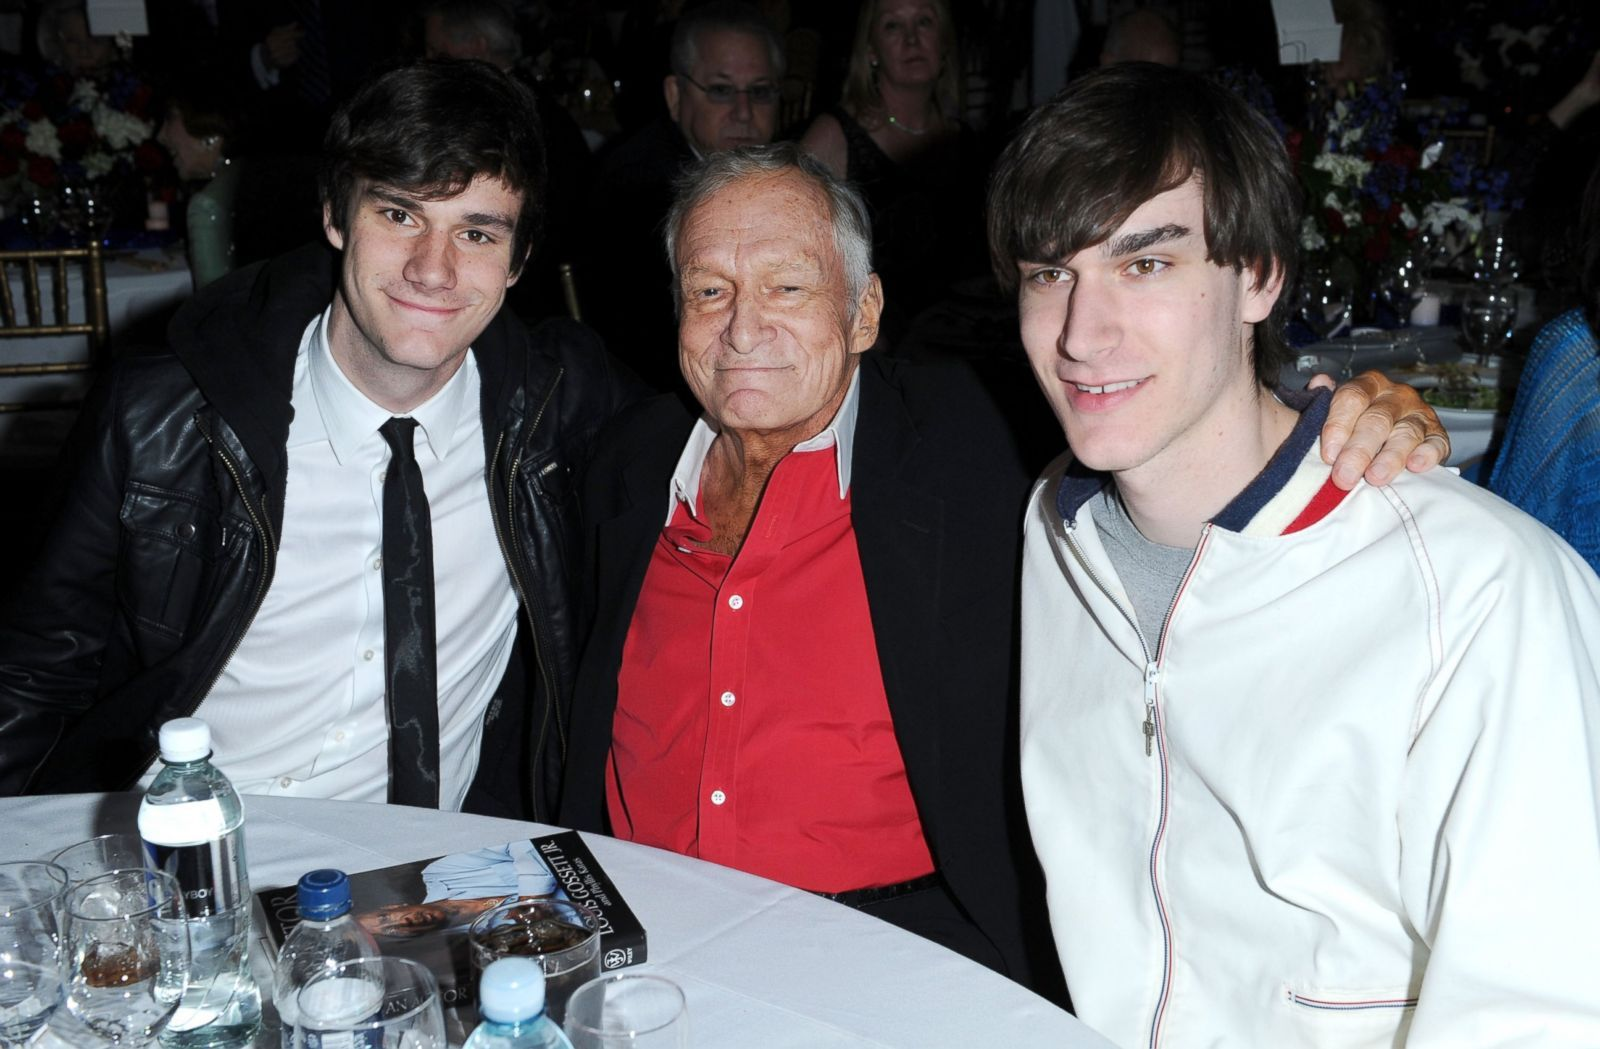 Hugh Hefner and his sons